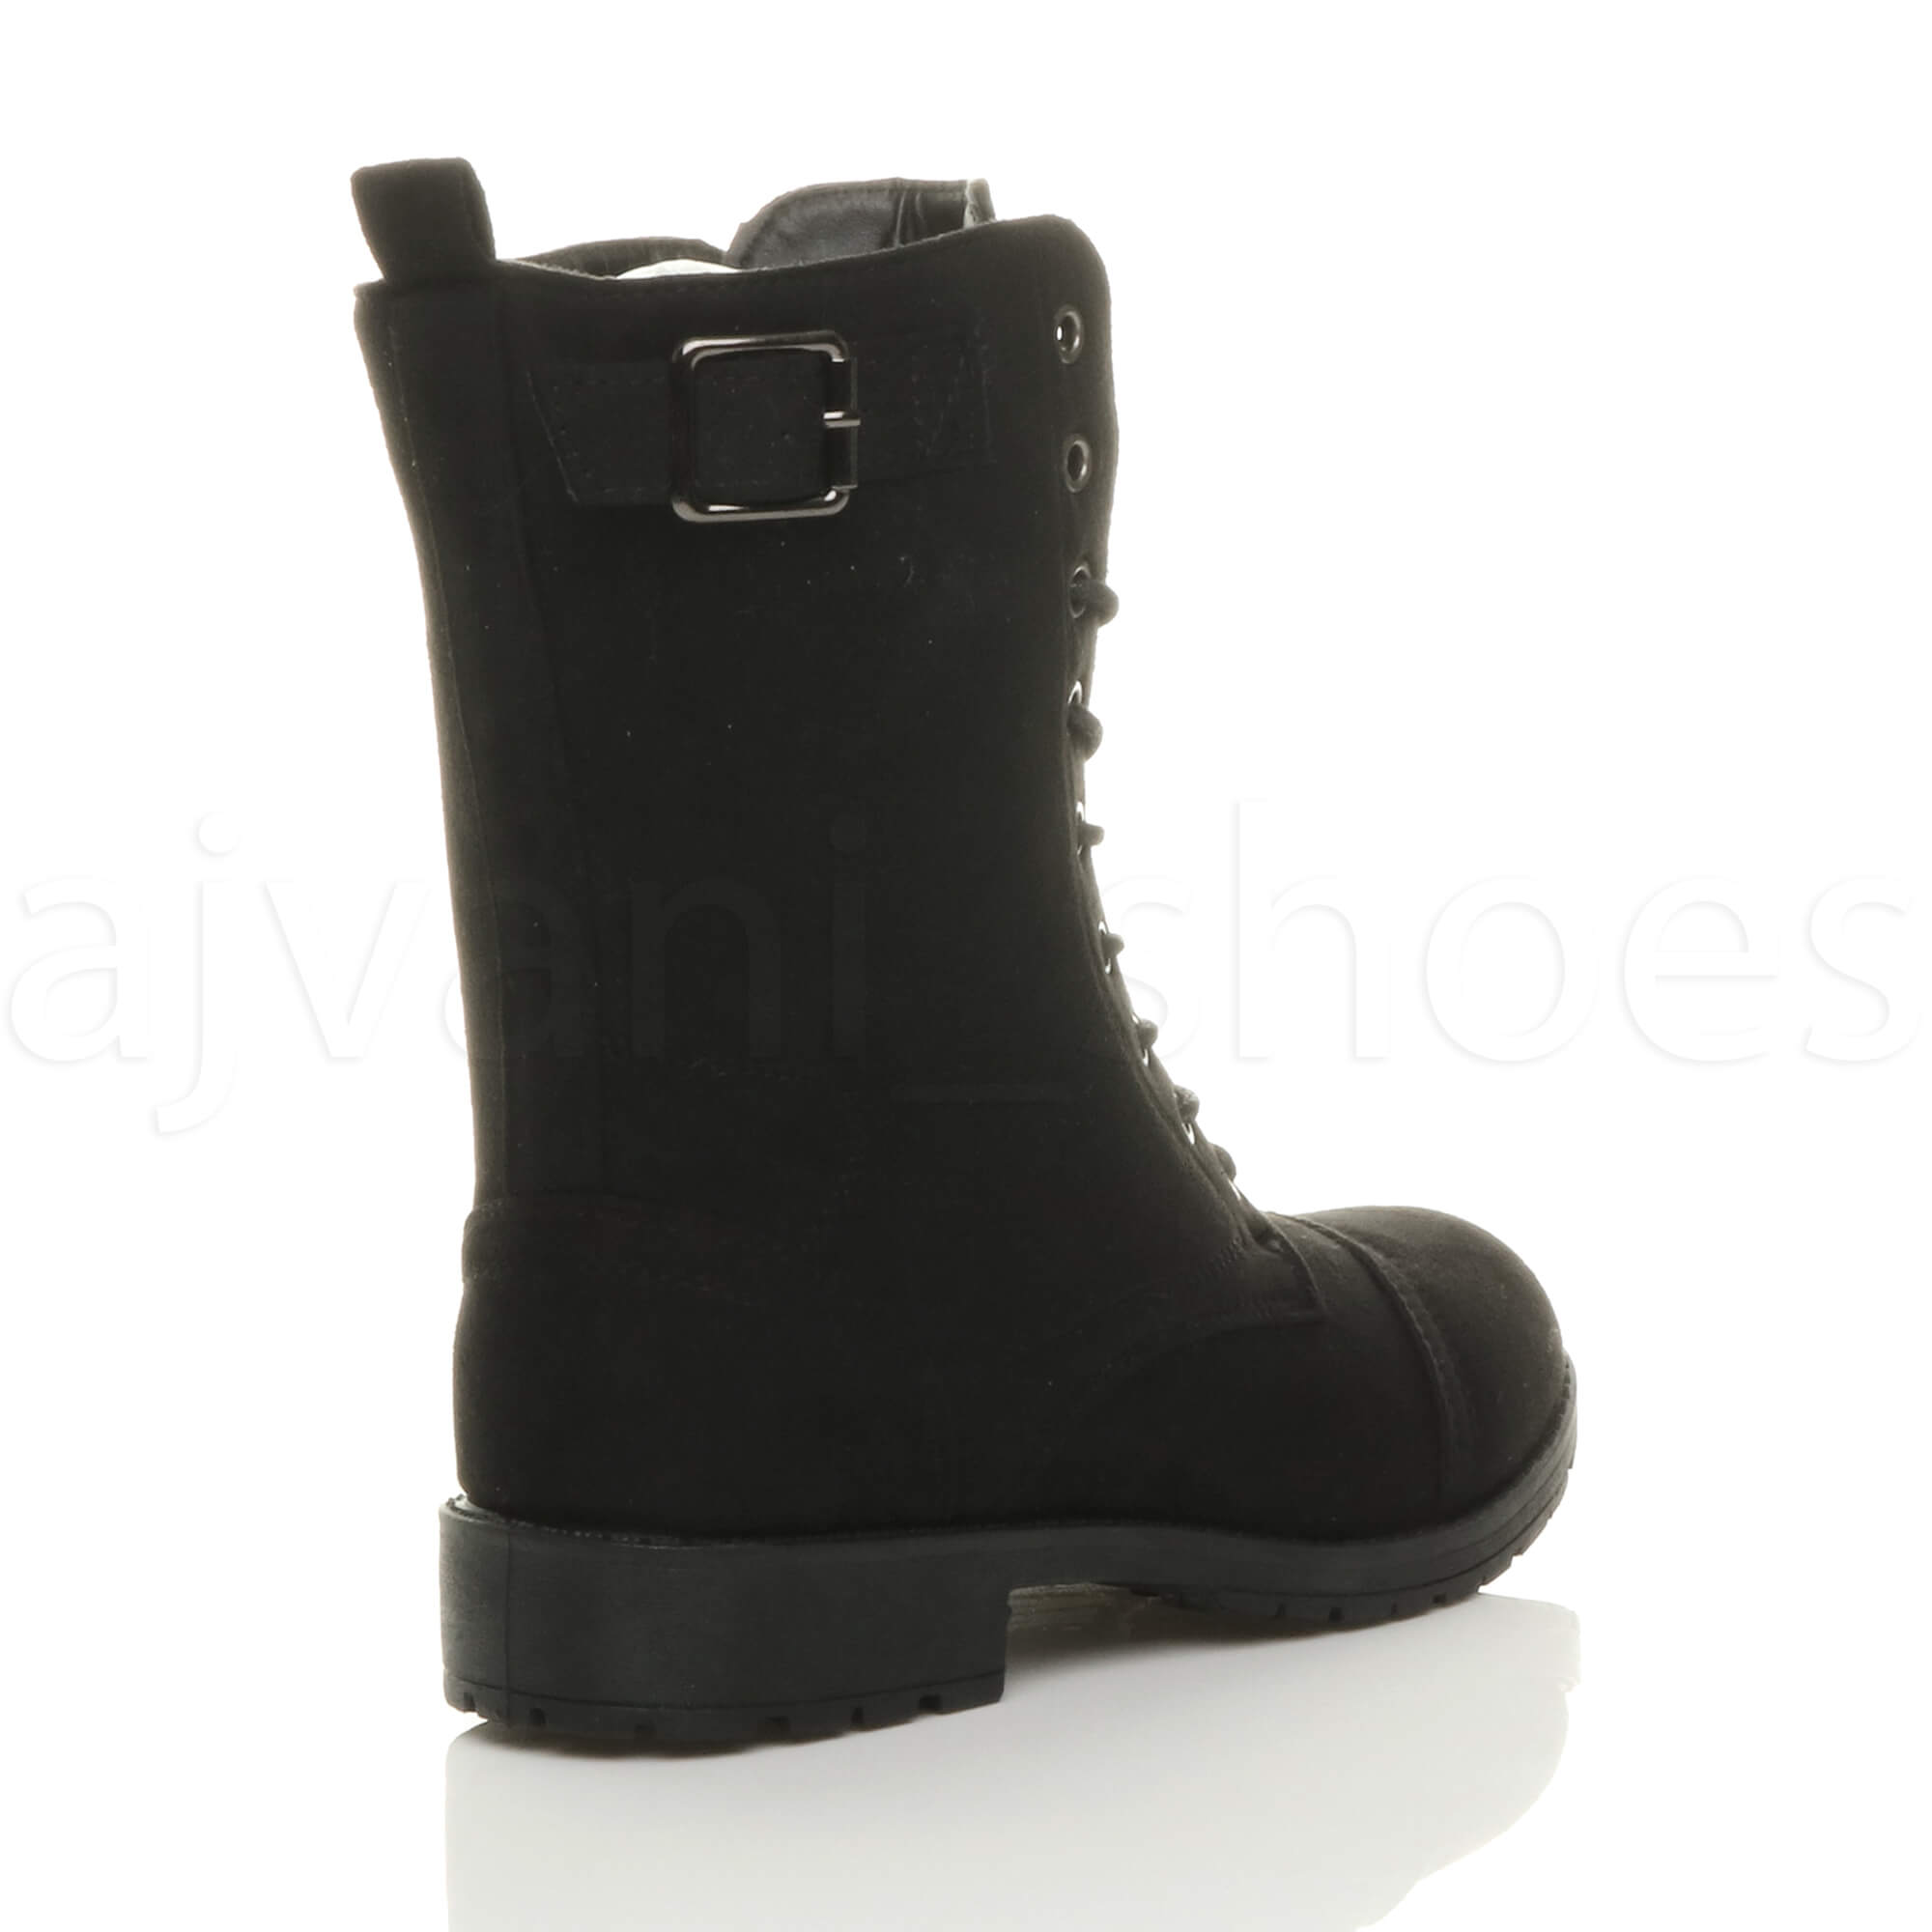 WOMENS-LADIES-LOW-HEEL-LACE-UP-ZIP-BIKER-ARMY-MILITARY-COMBAT-ANKLE-BOOTS-SIZE